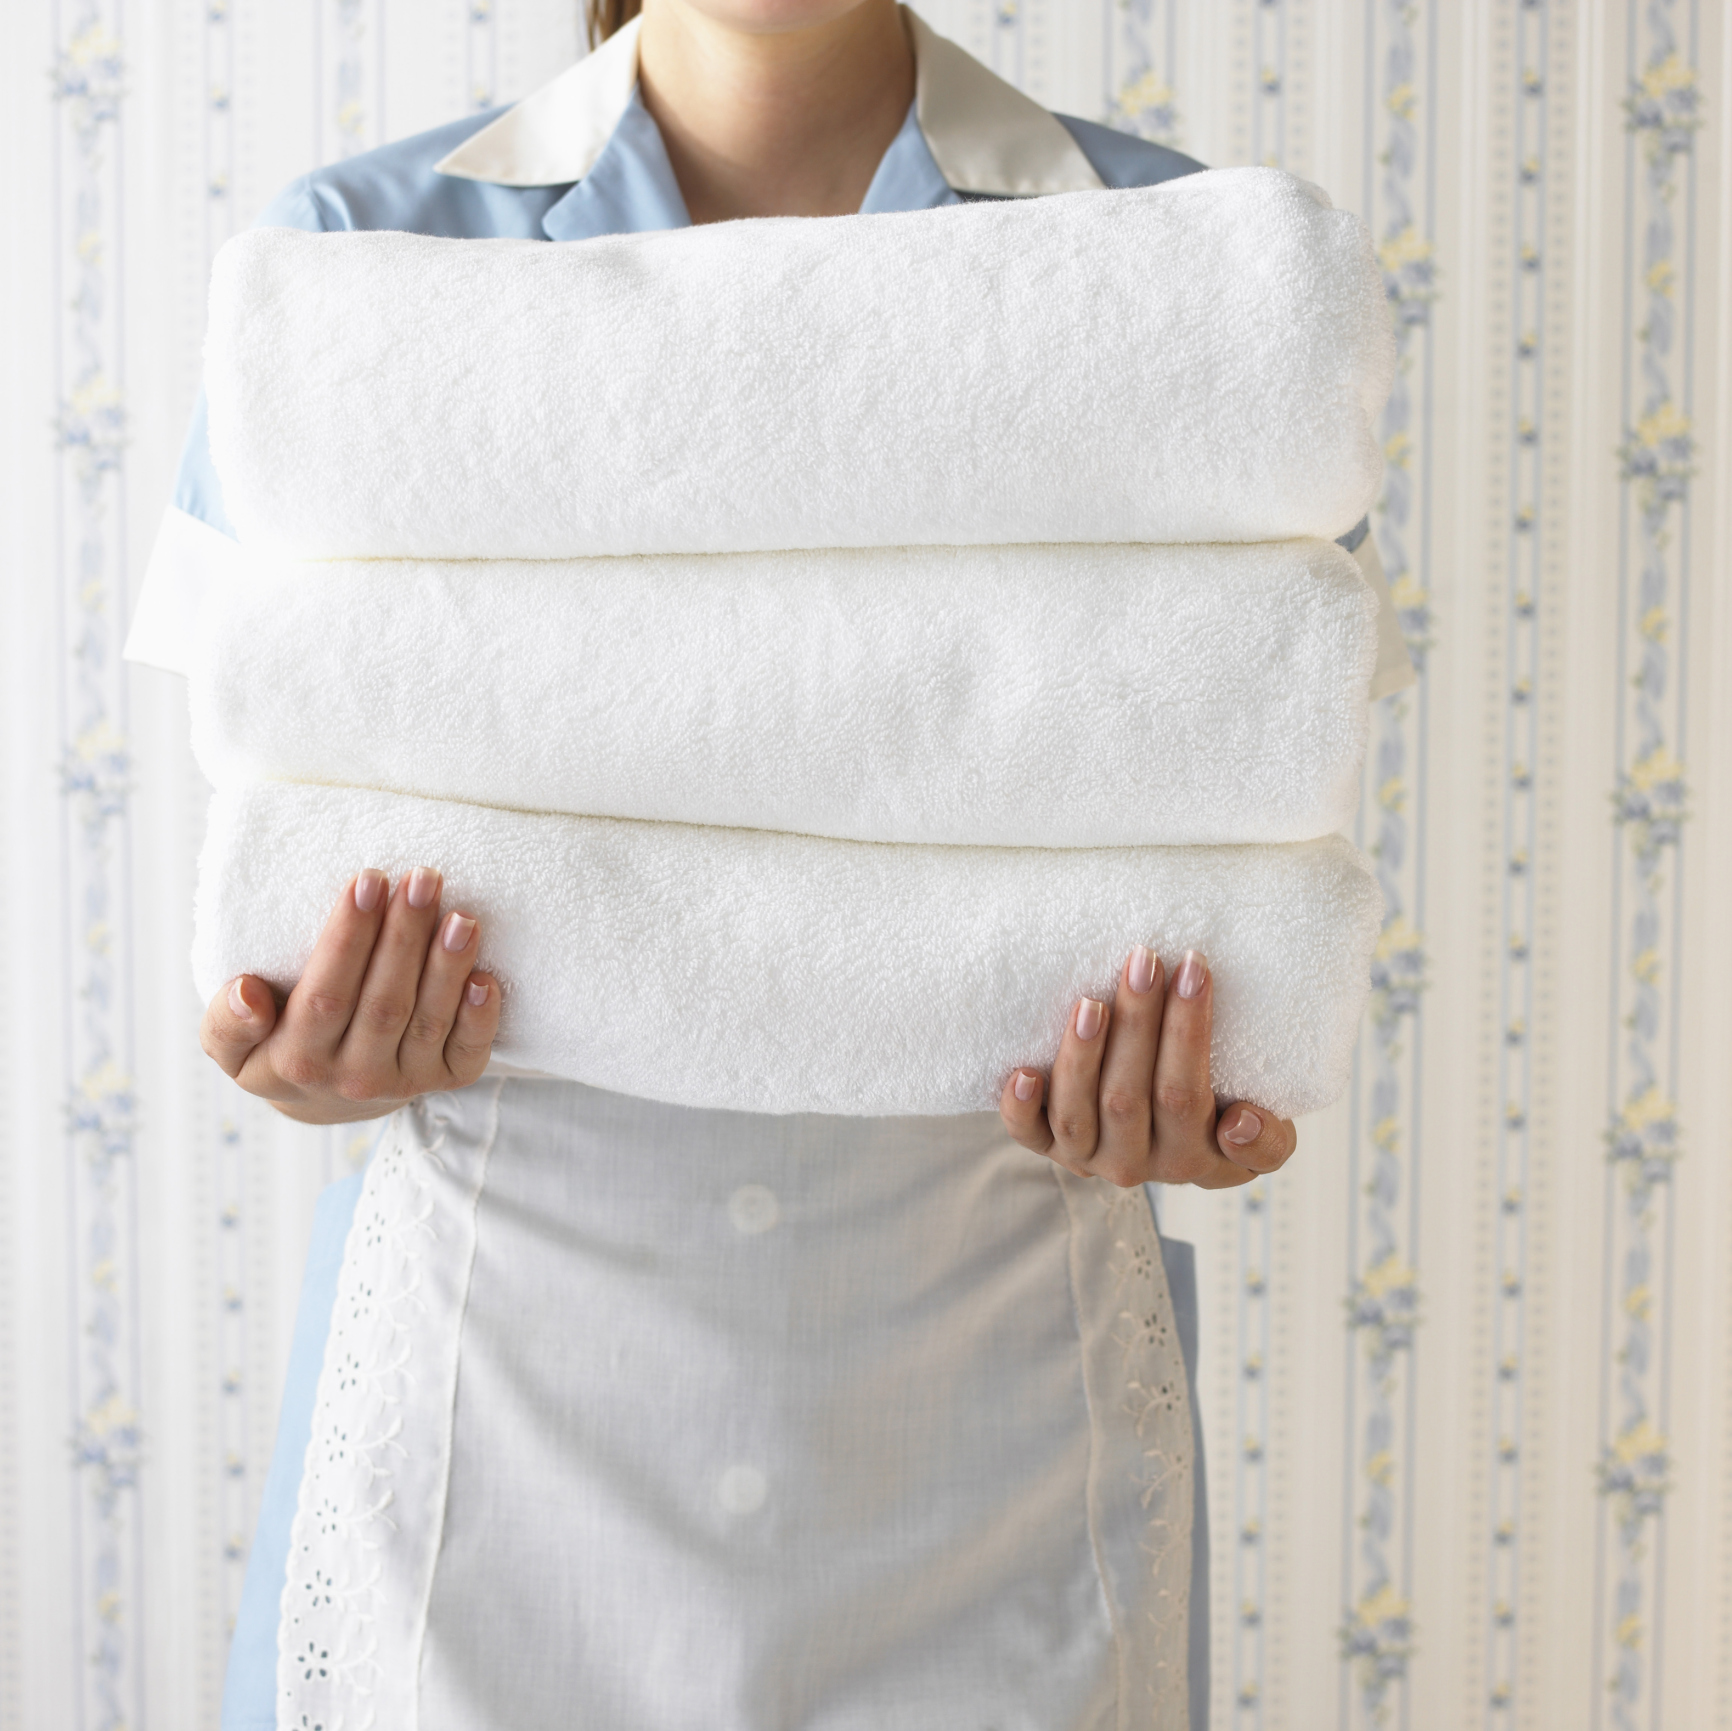 Hotel Housekeeping Services: The Perfect Gifts For Busy People